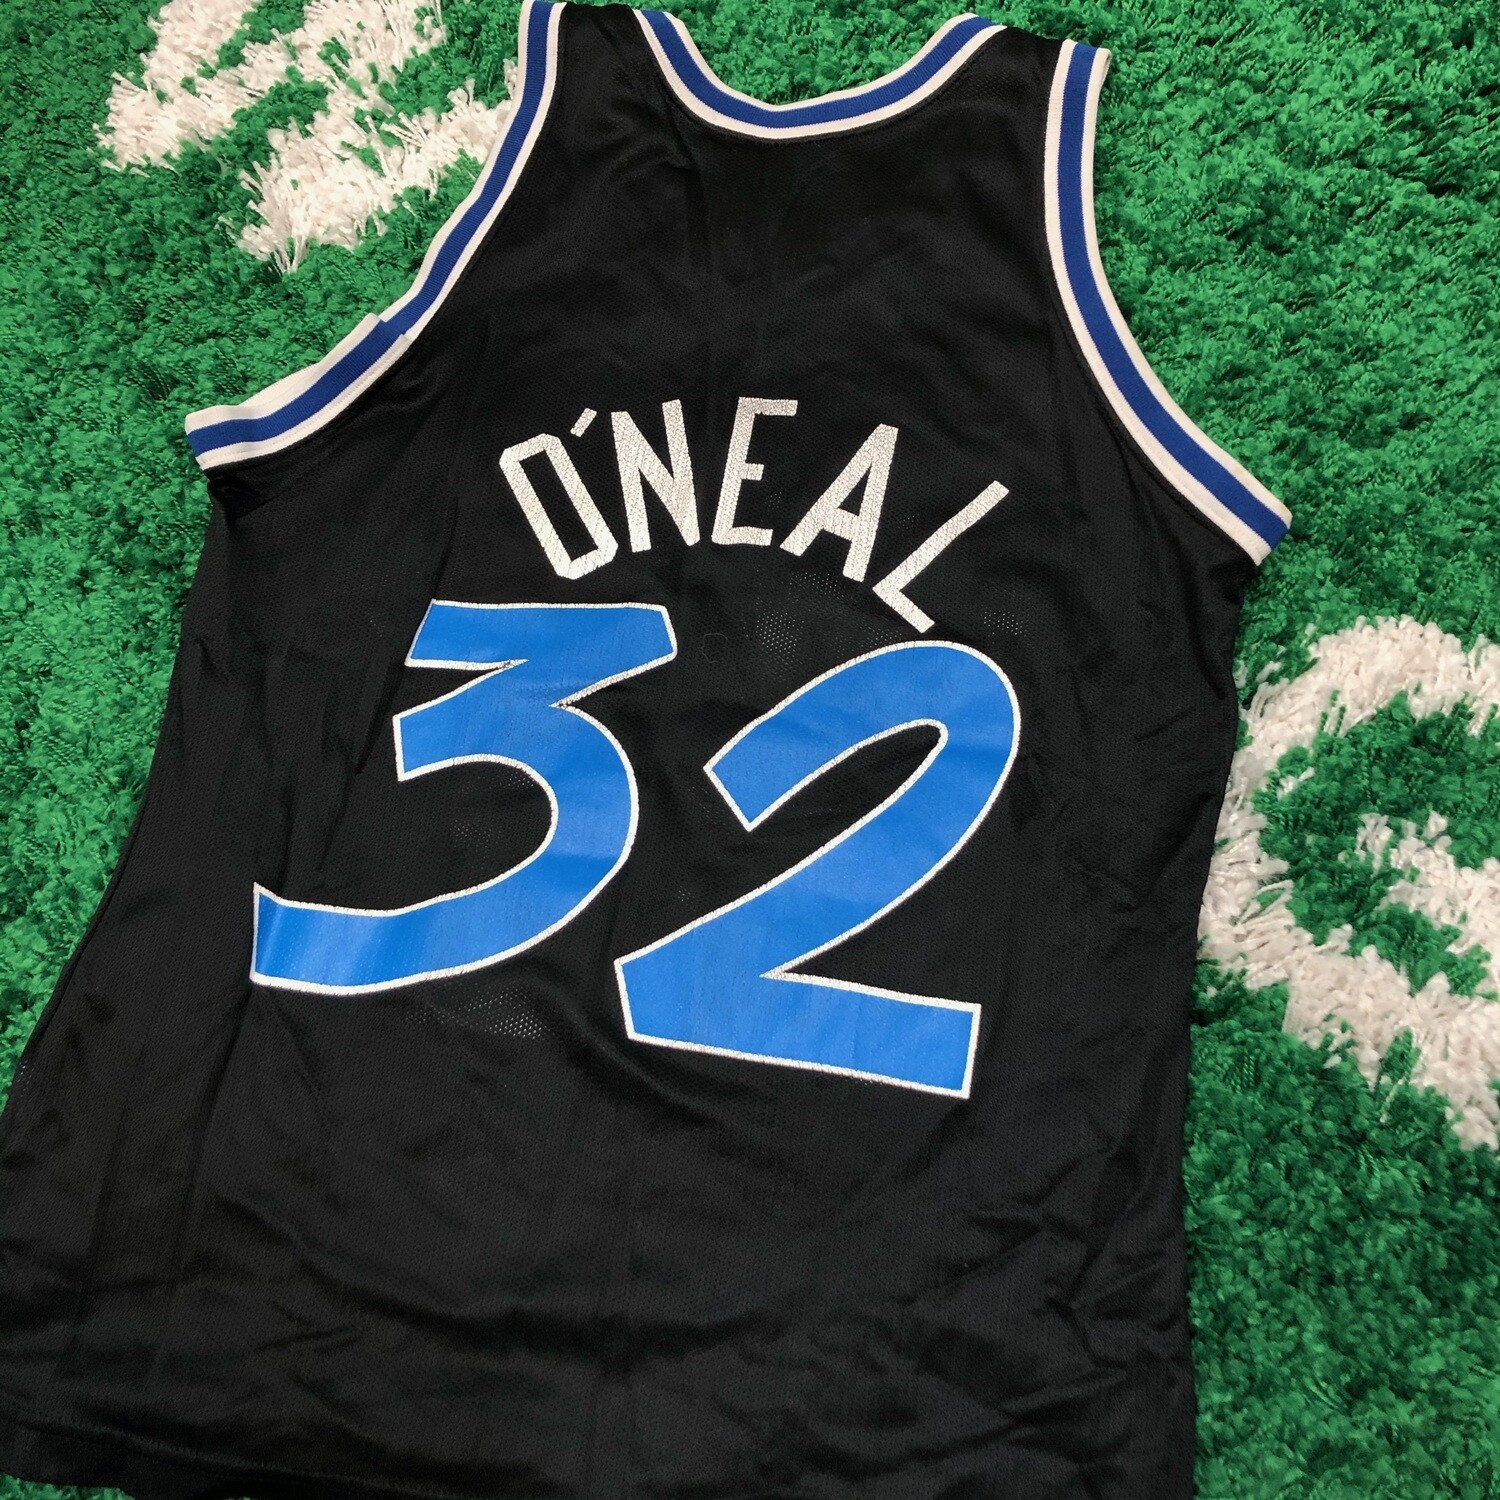 Shaquille O'Neal Orlando Champion Jersey Size Small